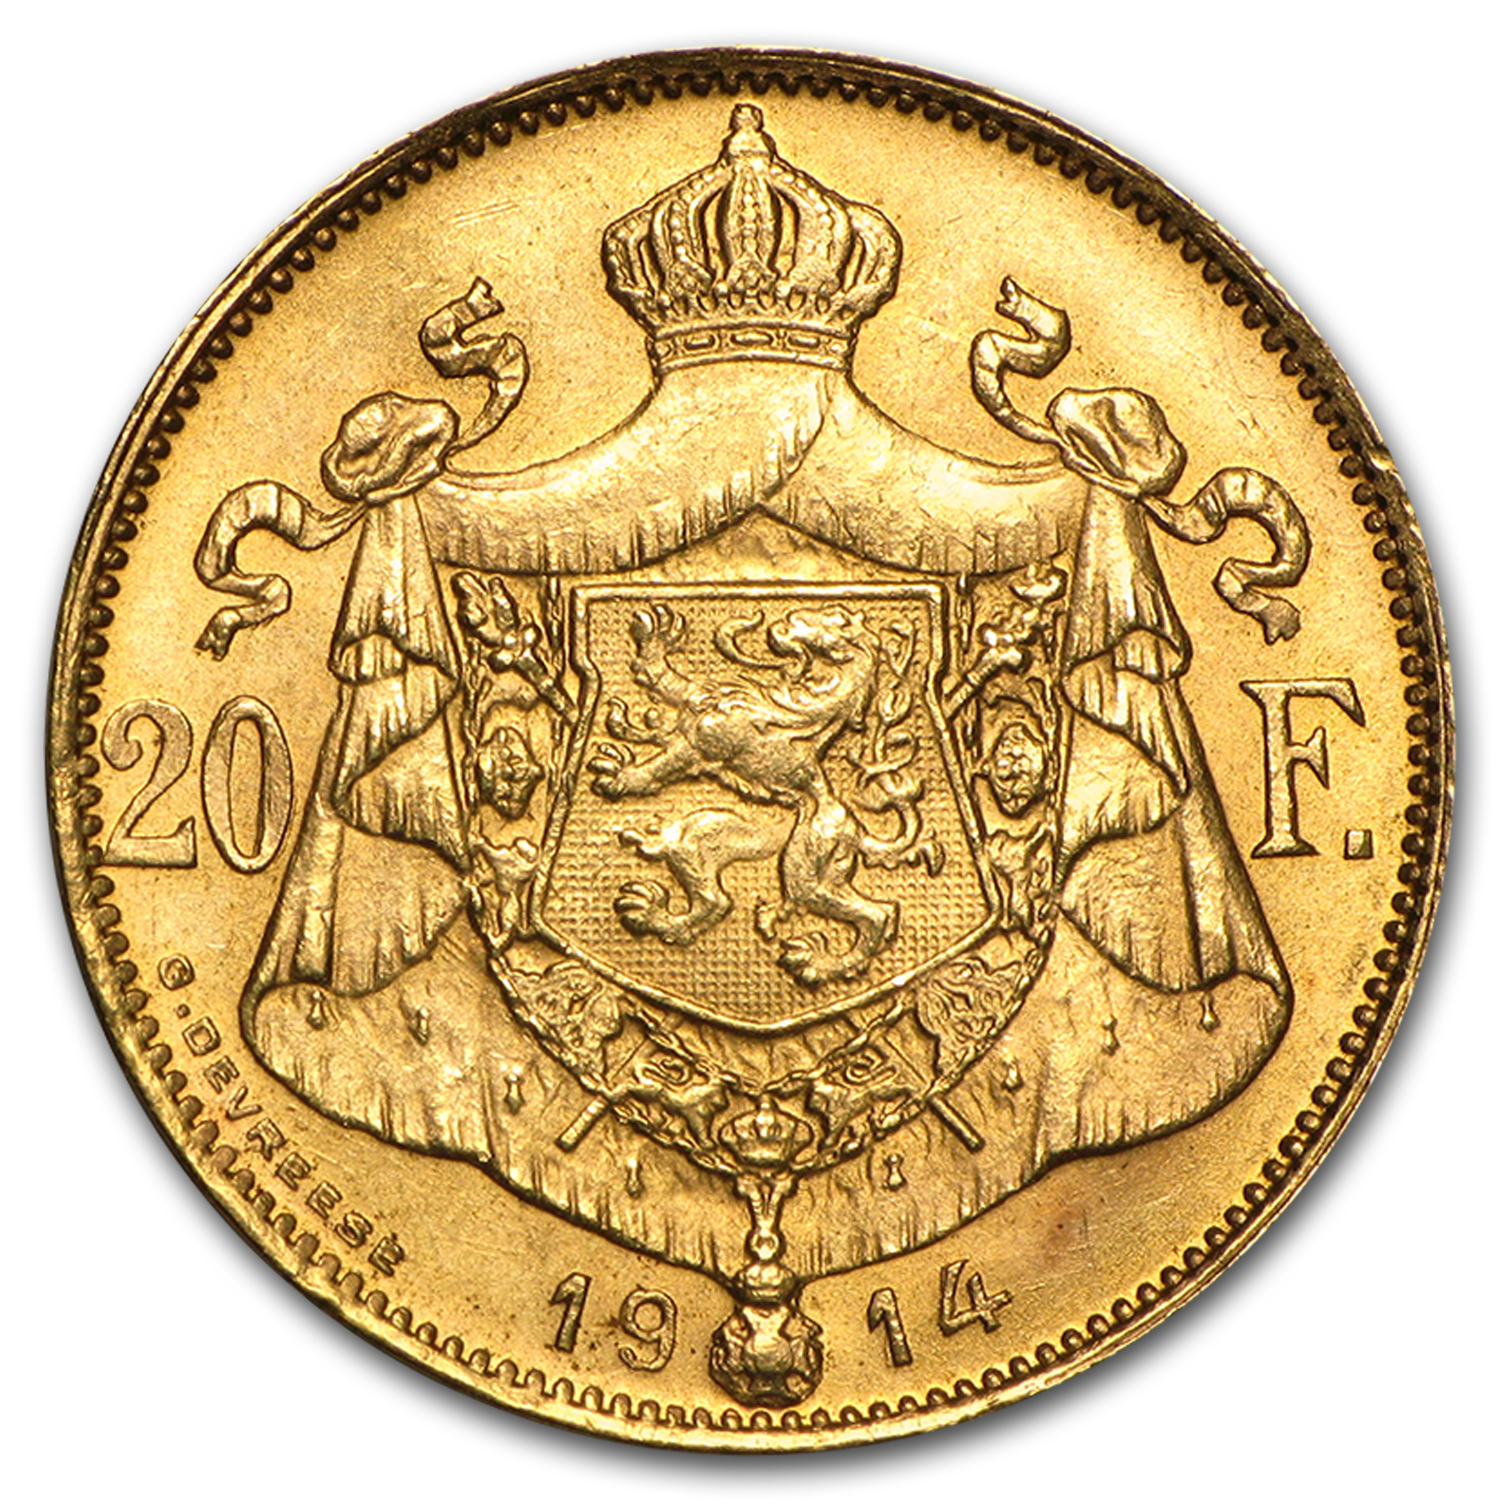 1914 Belgium Gold 20 Francs Albert I AU (French Inscription)